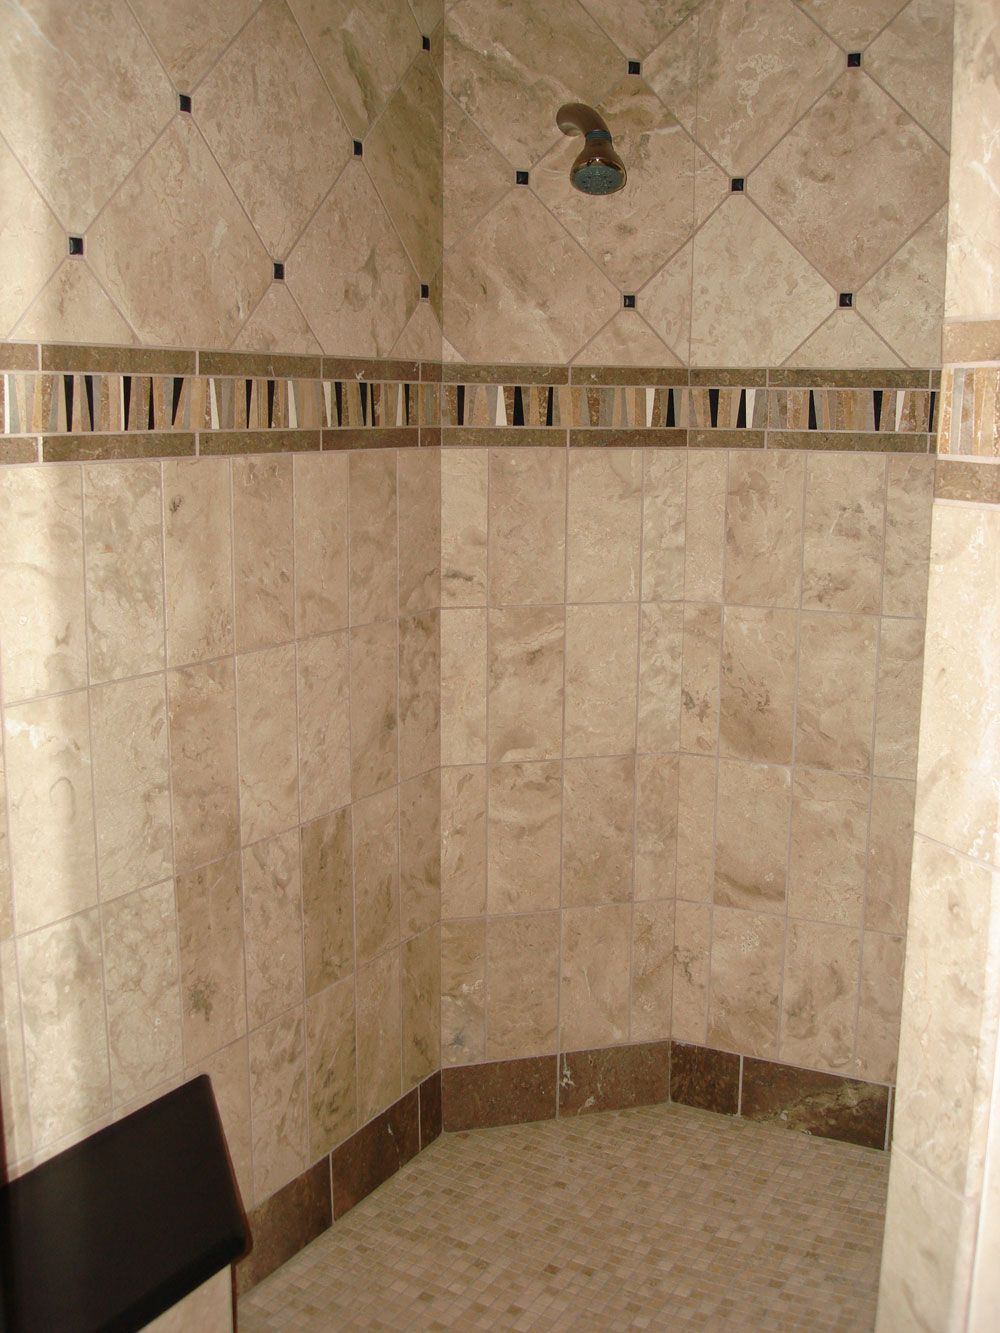 Mln Bathroom Tile Ideas Ideas for The Housetile